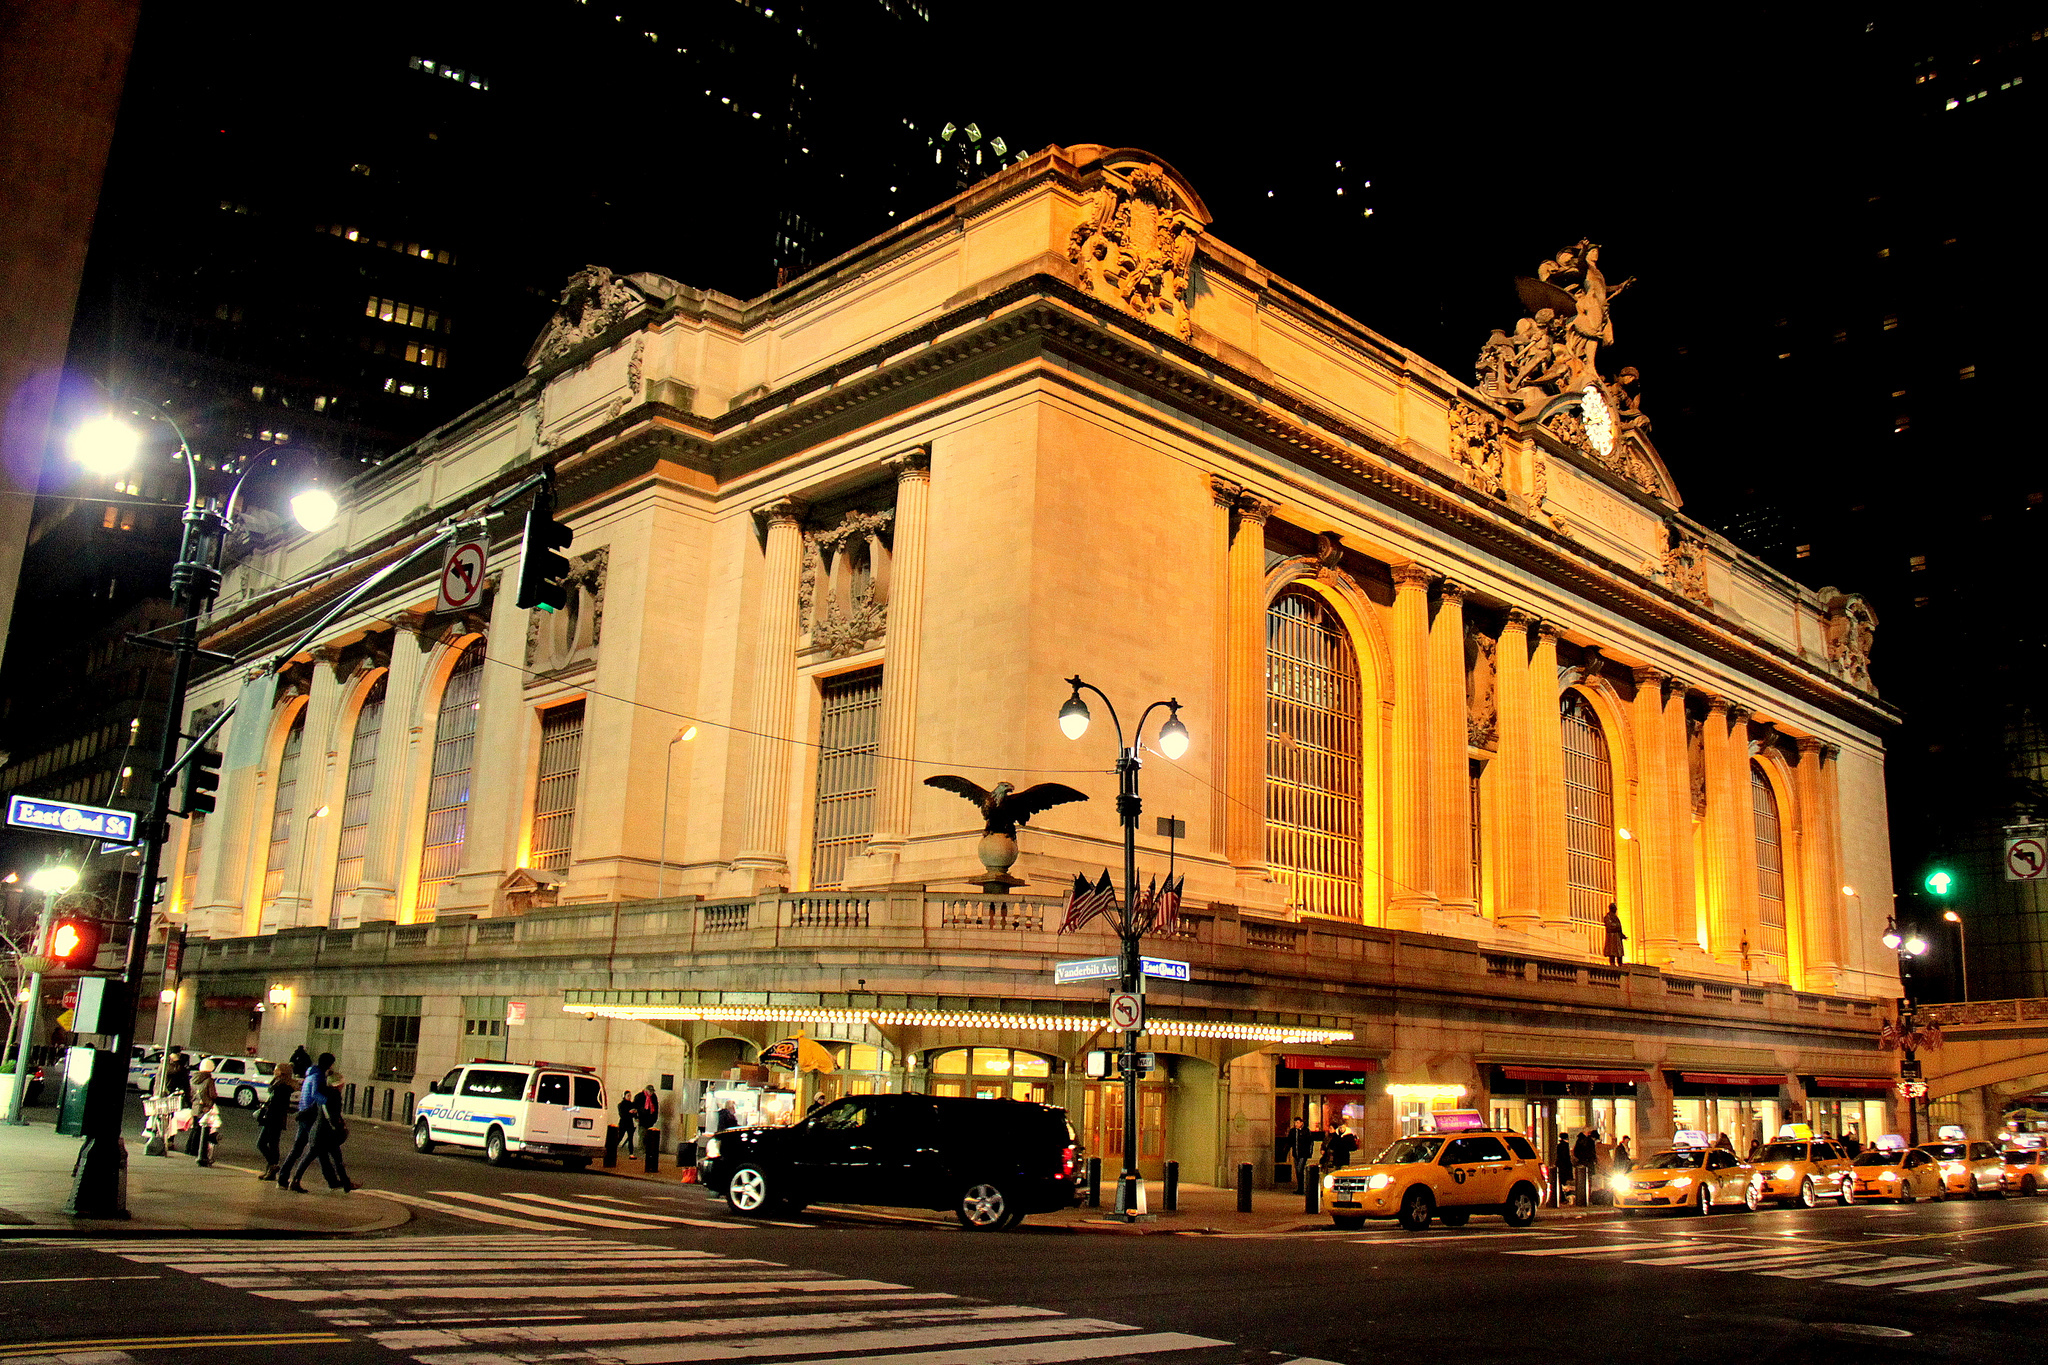 Amtrak trains may start running out of Grand Central this summer